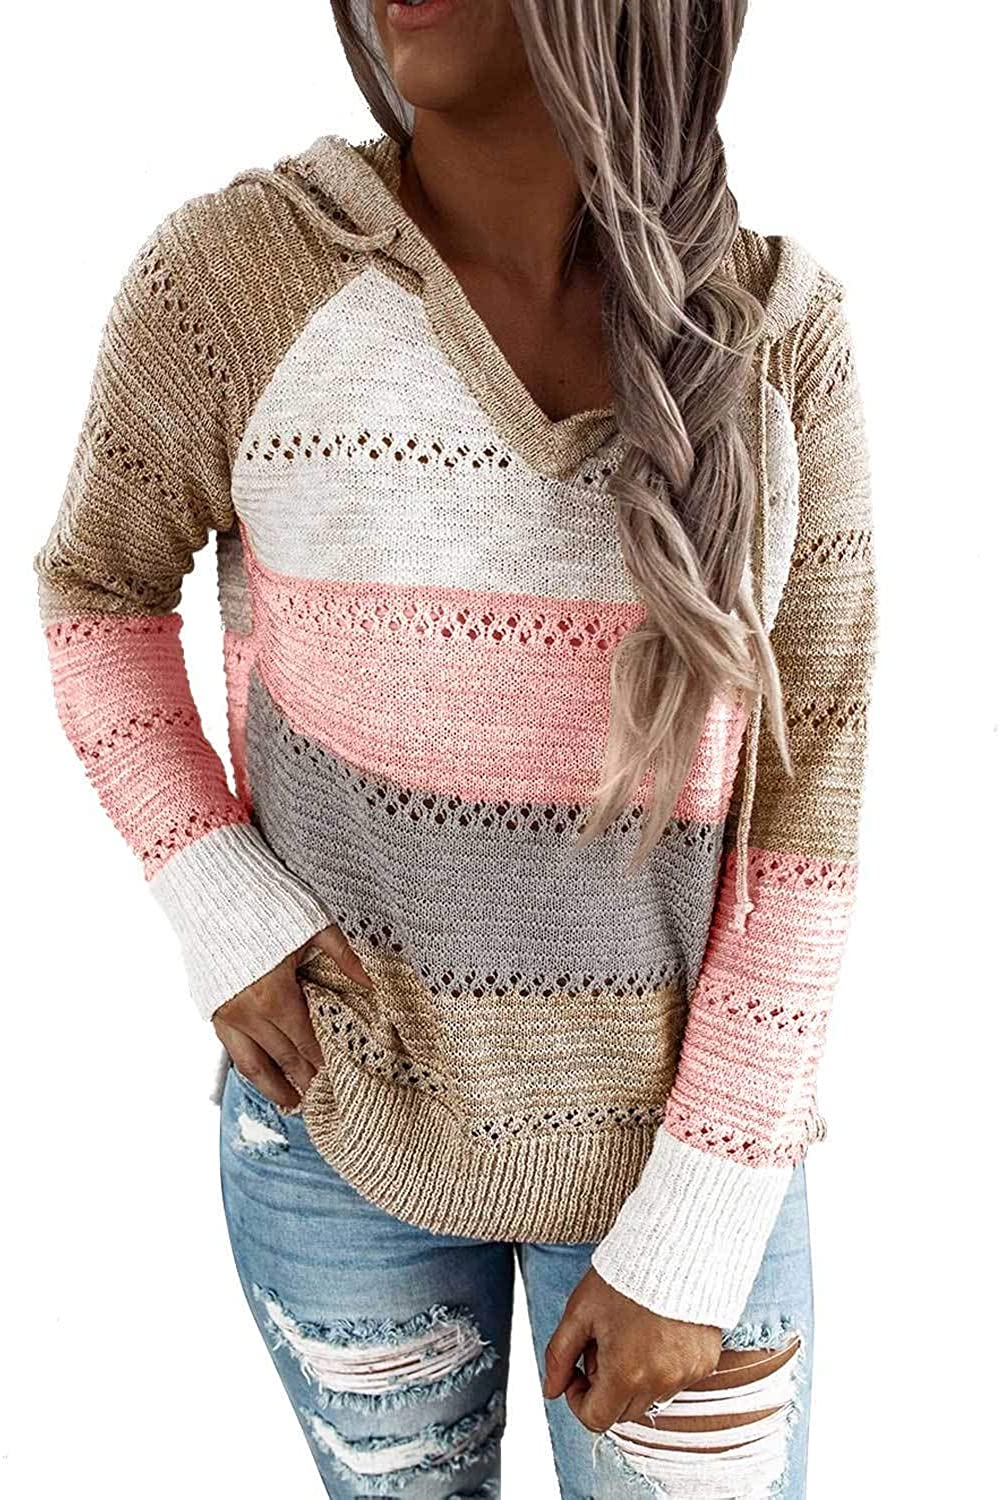 Lovezesent Womens Color Block Long Sleeve Ribbed Knit Oversized Pullover Sweaters